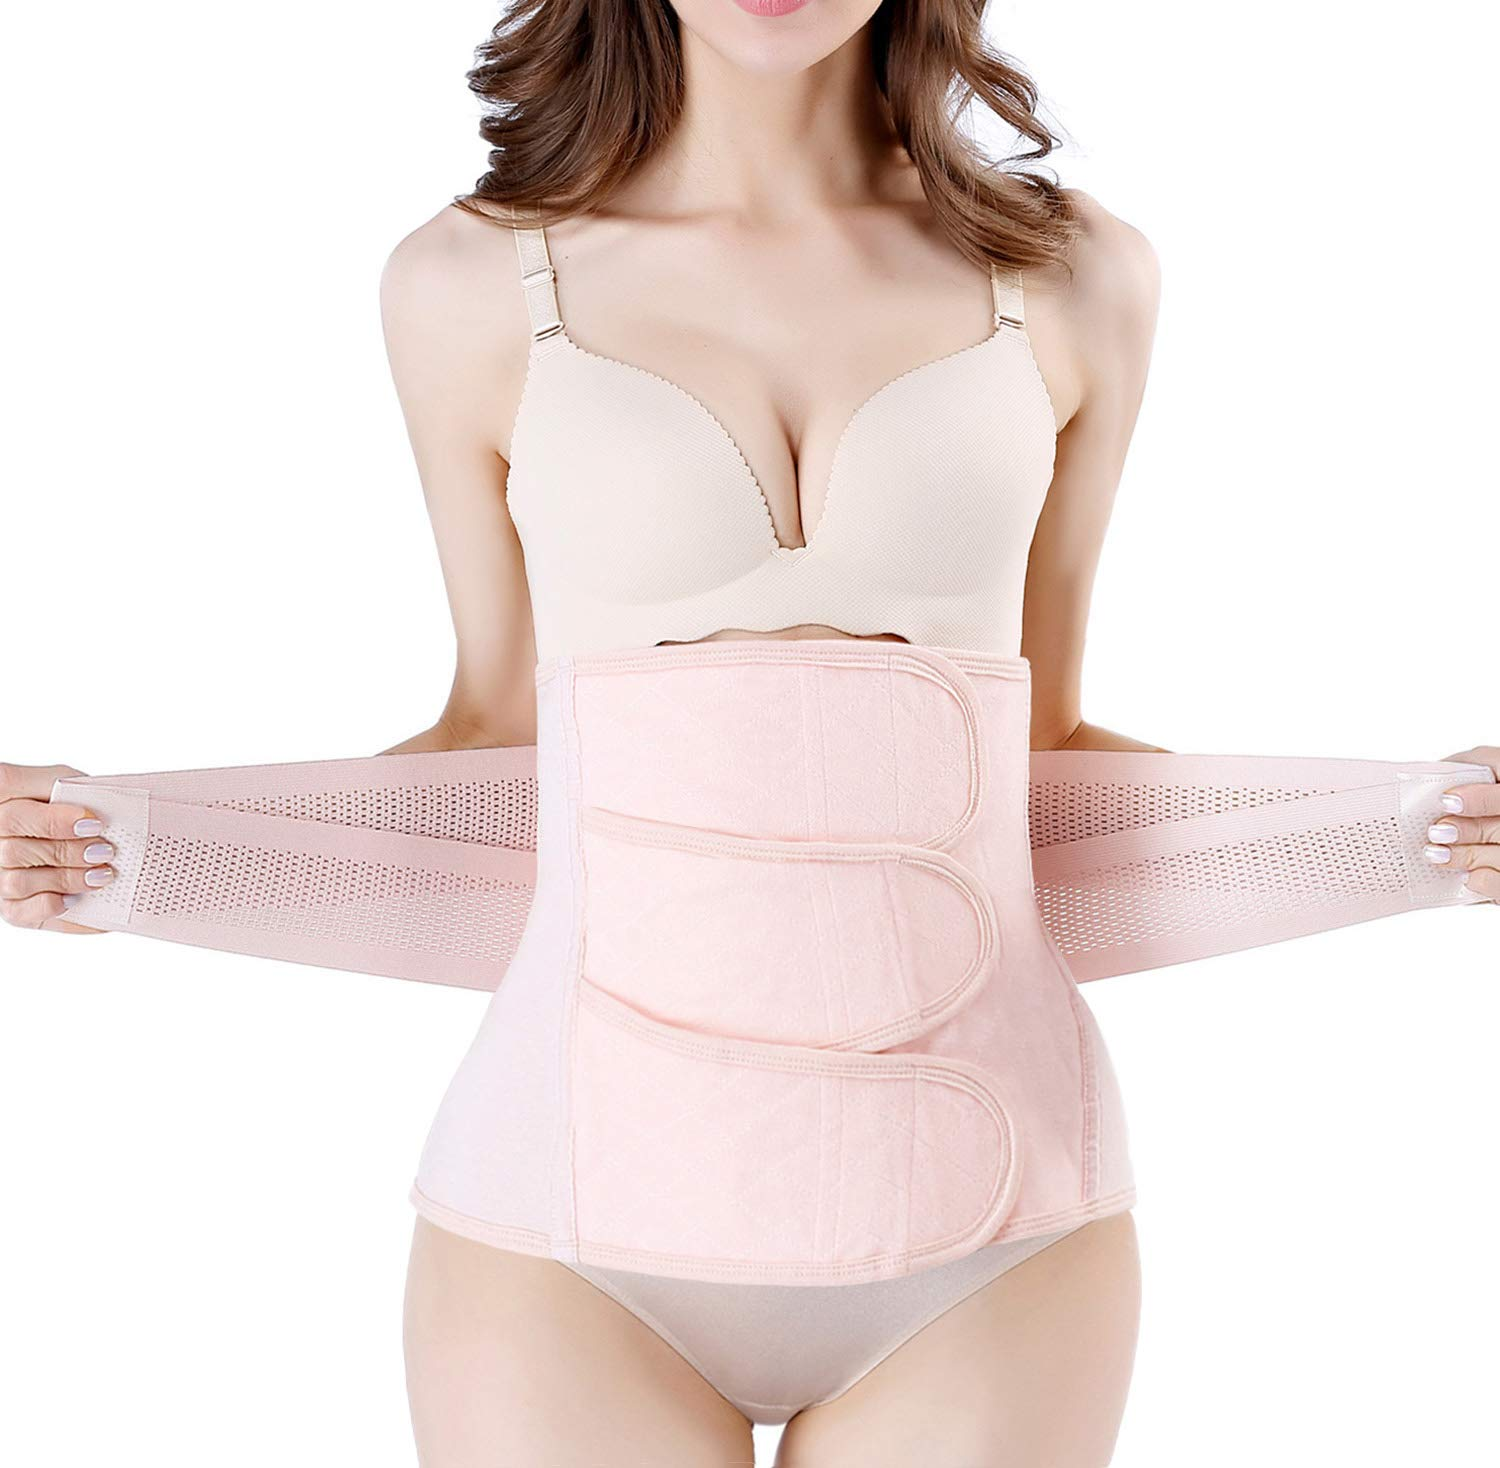 b47e5c8334 Postpartum Girdle C-Section Recovery Belt Back Support Belly Wrap Belly  Band Shapewear product image